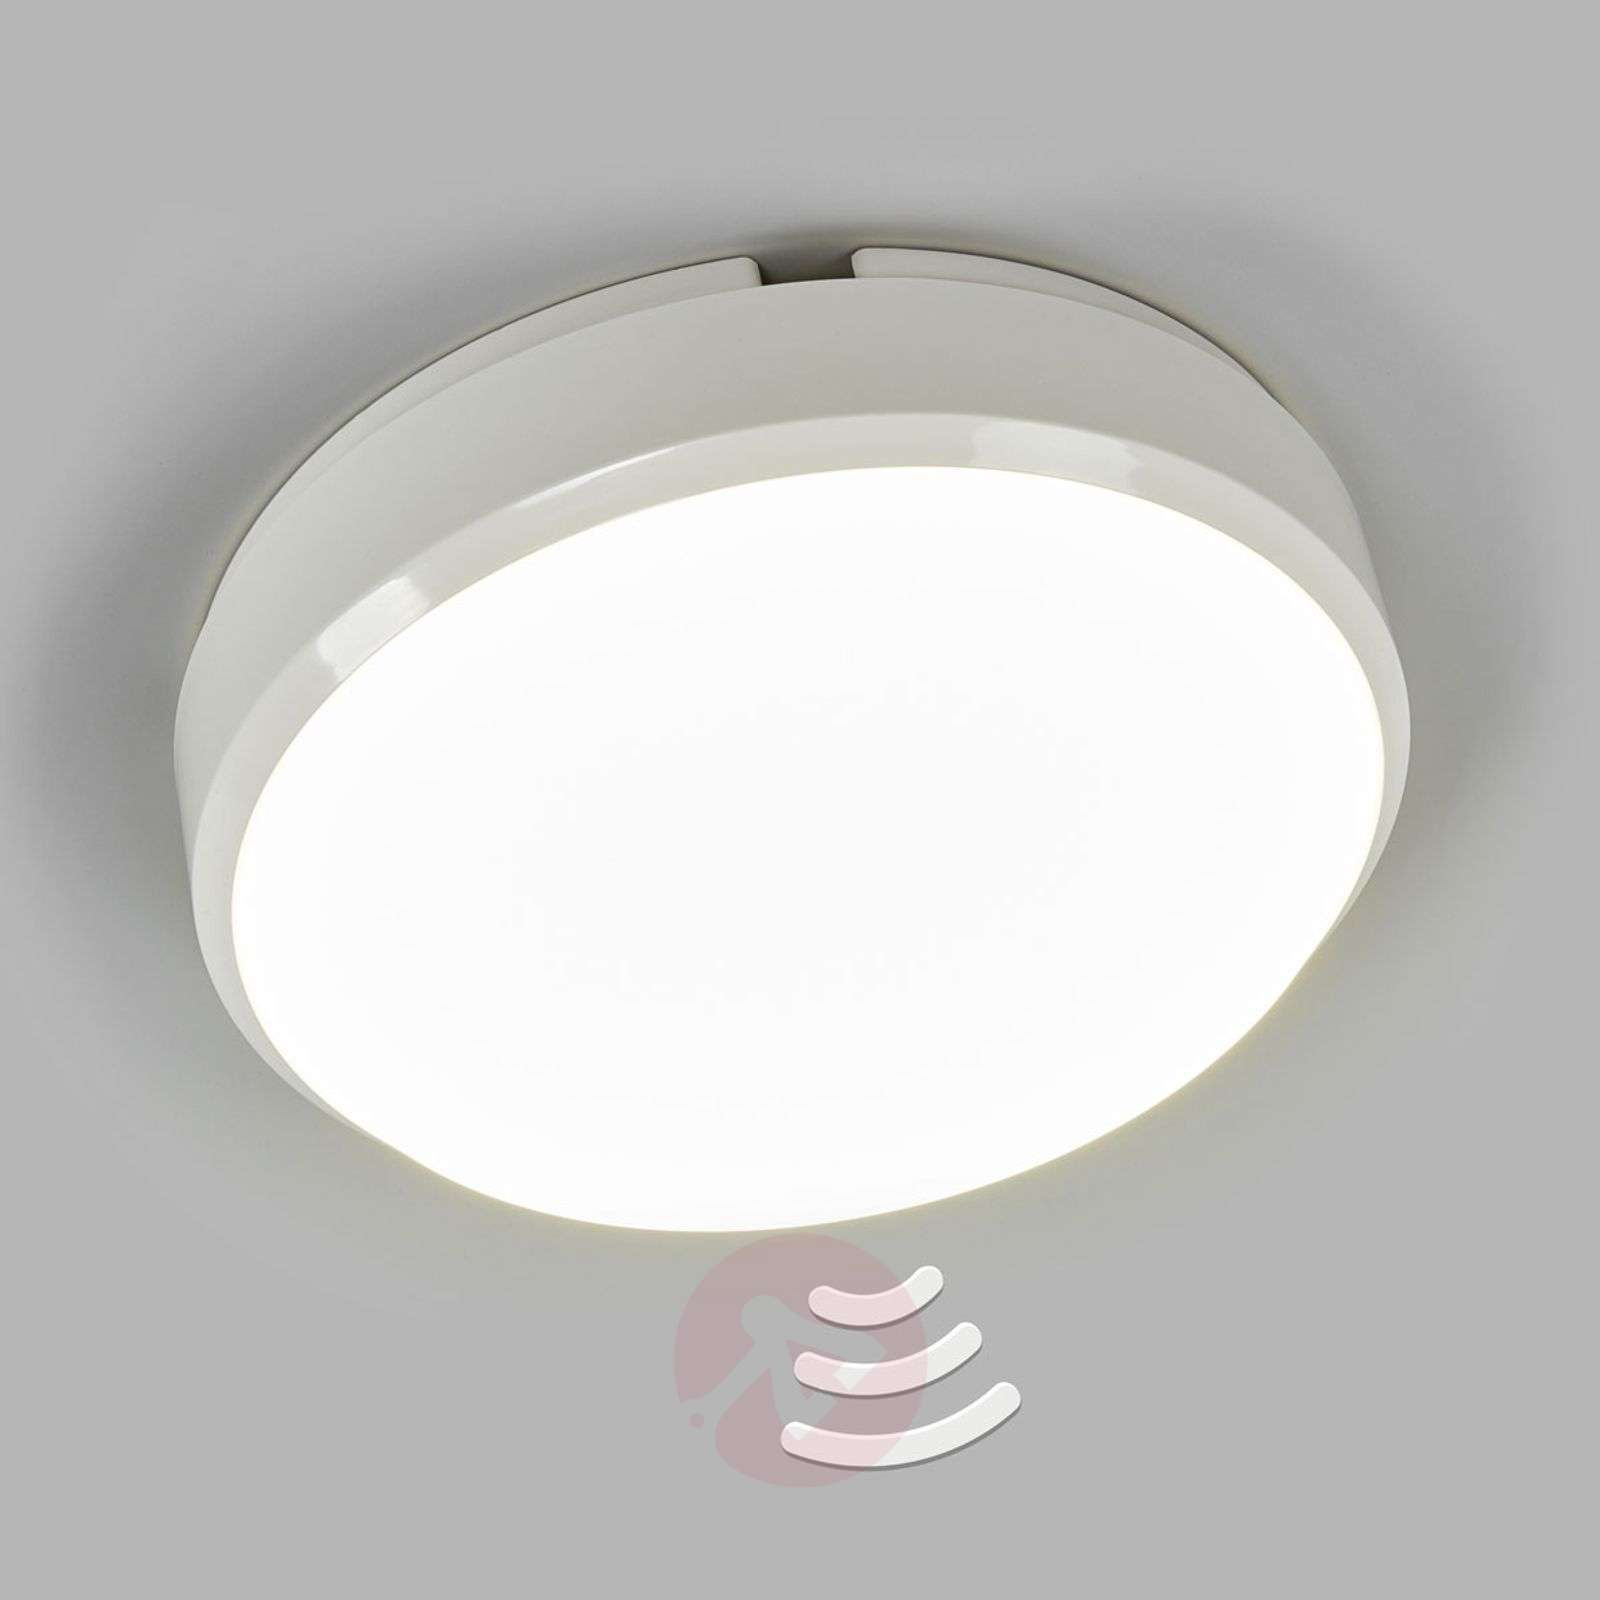 Plafoniera Led Da Soffitto : Acquista plafoniera led da soffitto bulkhead sensore lampade.it